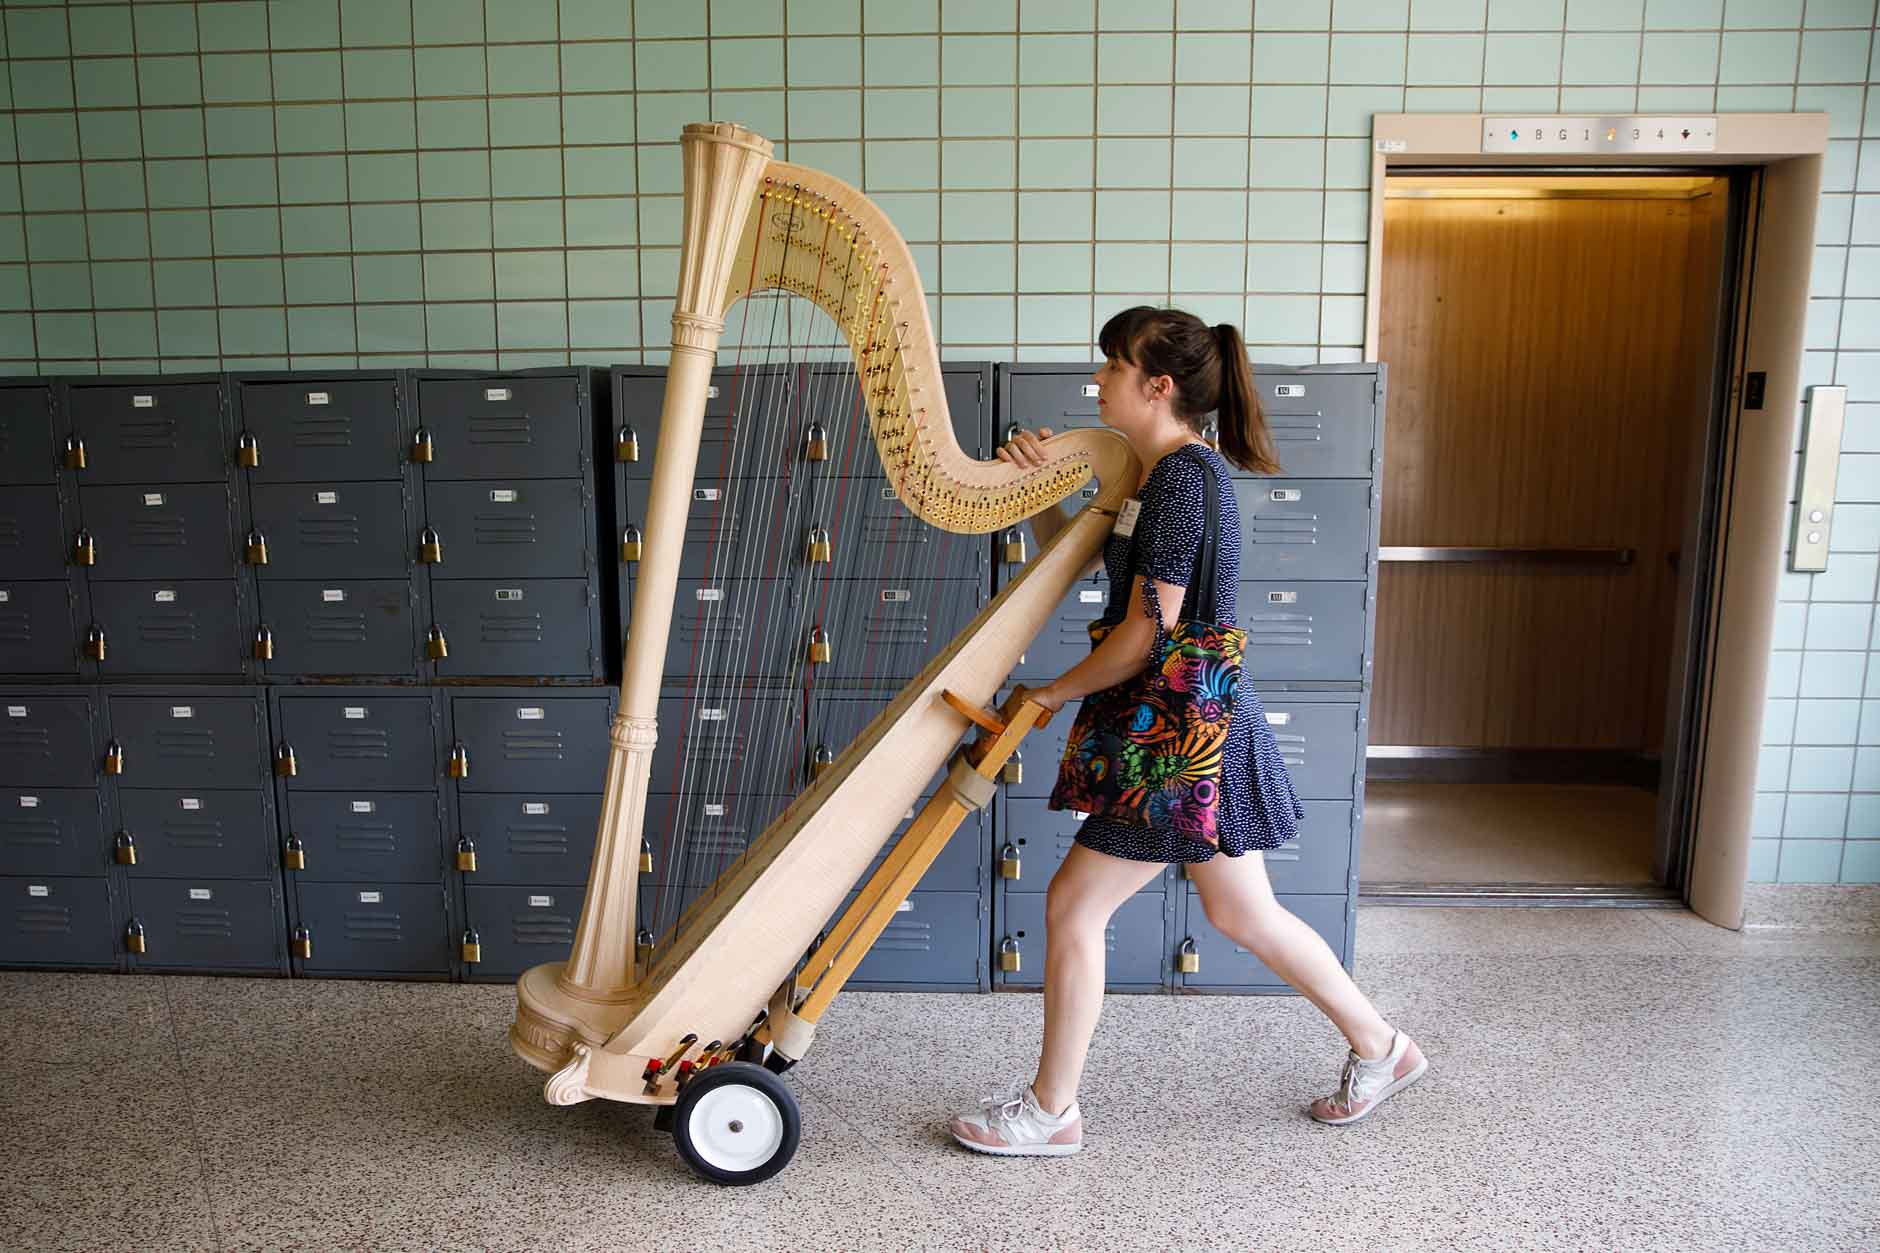 USA International Harp Competition Coordinator Caroline Robinson moves a harp during the 11th USA International Harp Competition at Indiana University in Bloomington, Indiana on Wednesday, July 3, 2019. (Photo by James Brosher)